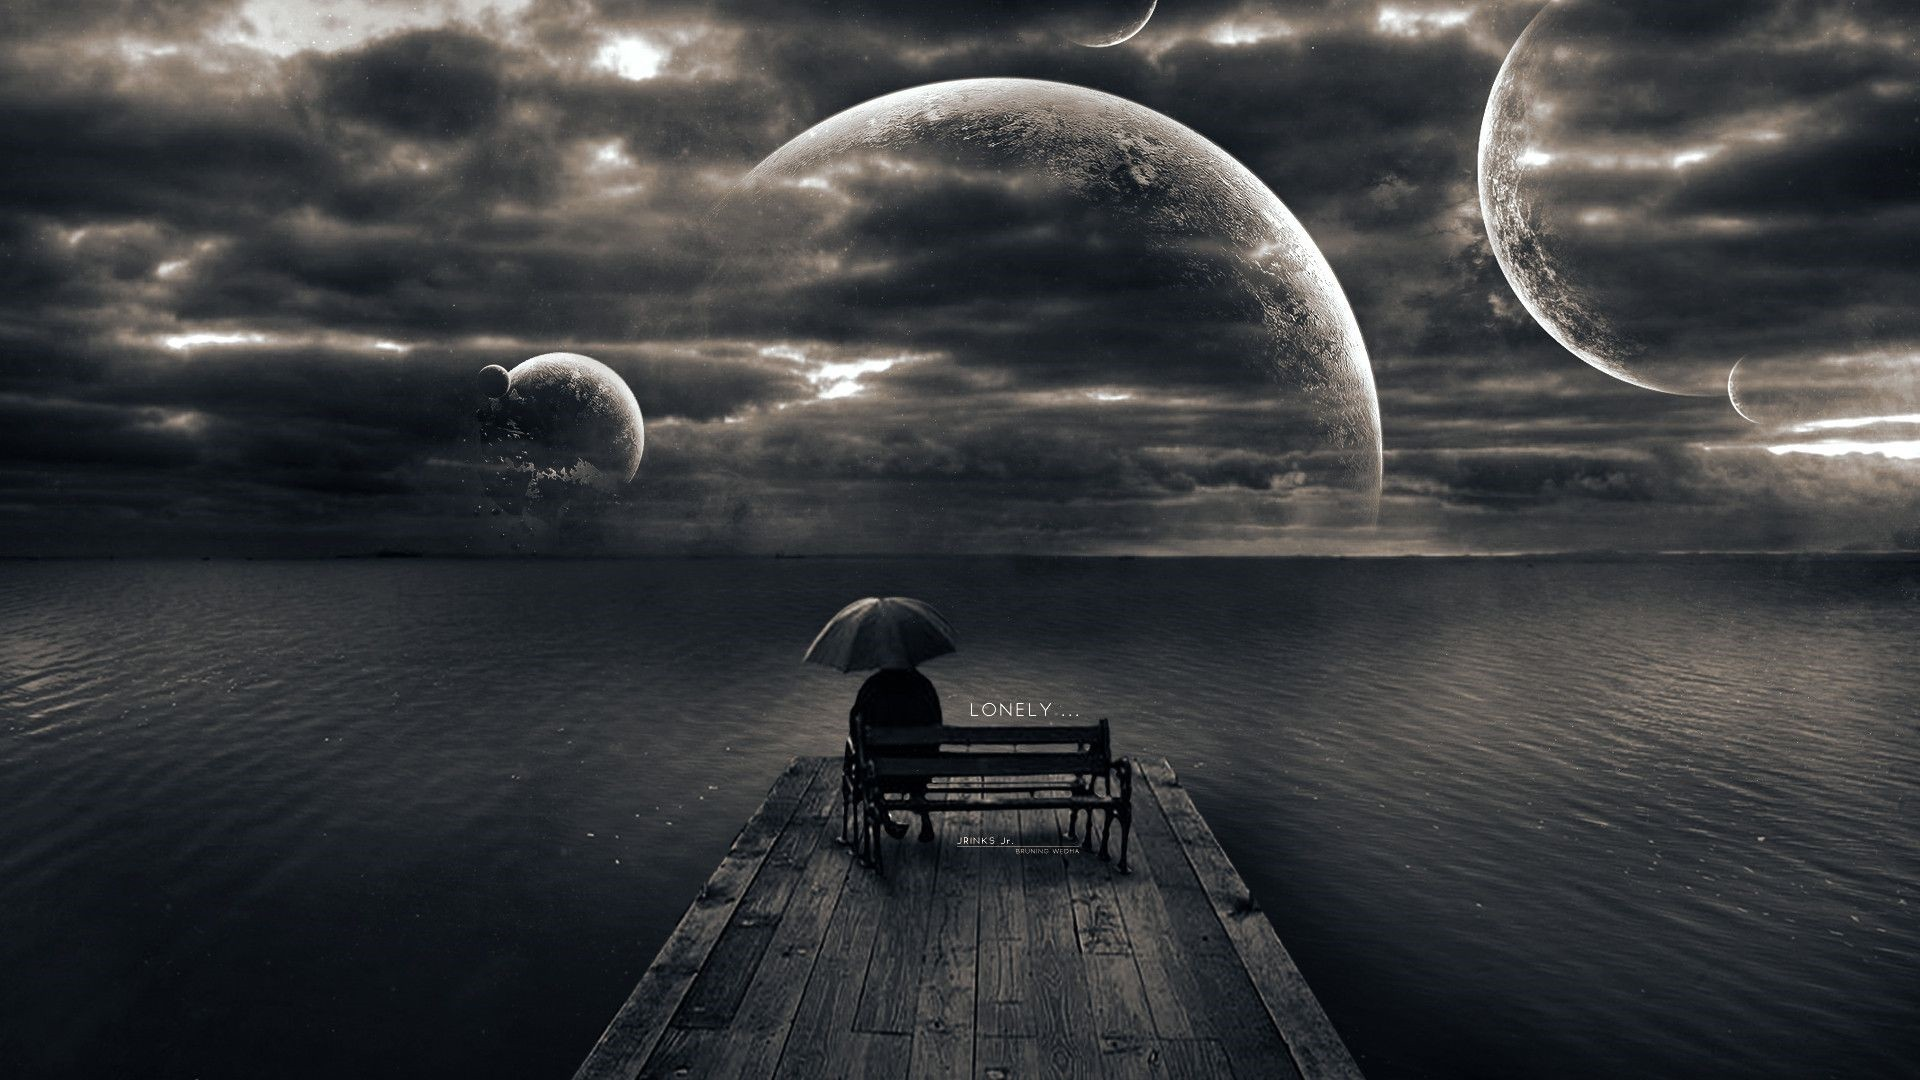 Lonely hd wallpaper download